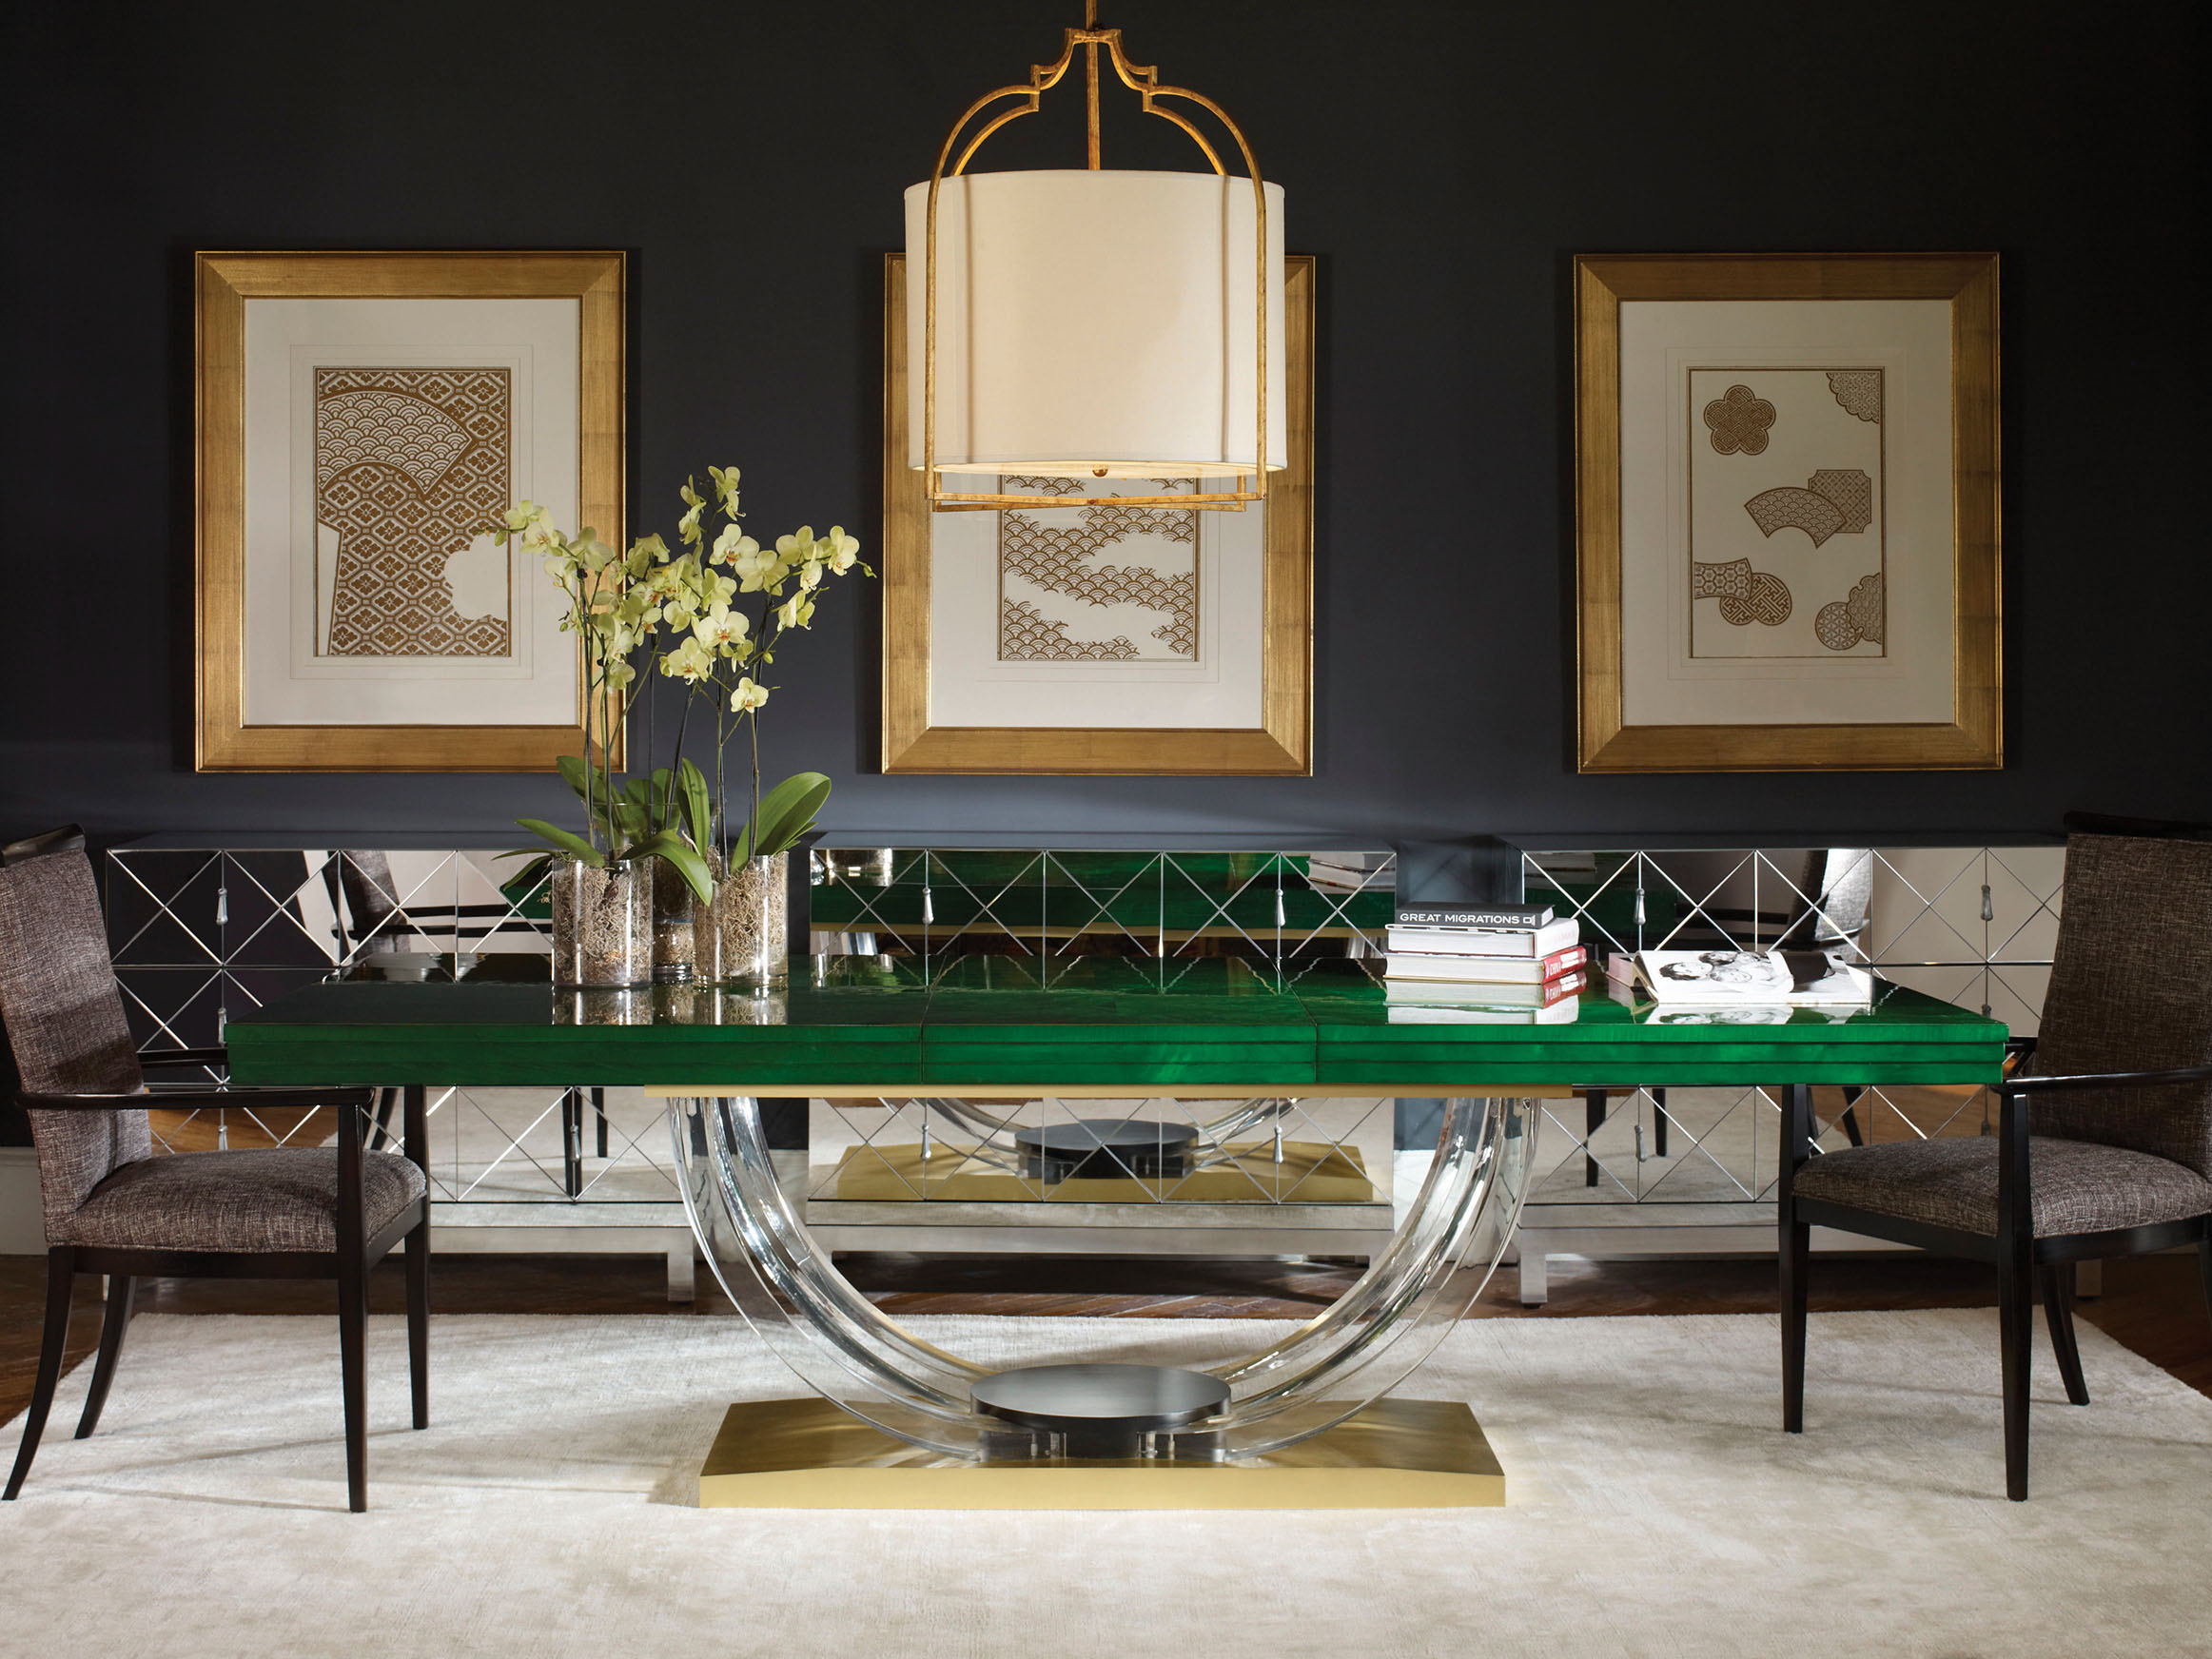 Mid-century modern is still popular, but the look is softening, well illustrated in this clear acrylic table base that gives the emerald top a floating illusion. The modern drum shade on the ceiling fixture is wrapped in a more traditional cage, juxtaposing two worlds into one cohesive look.